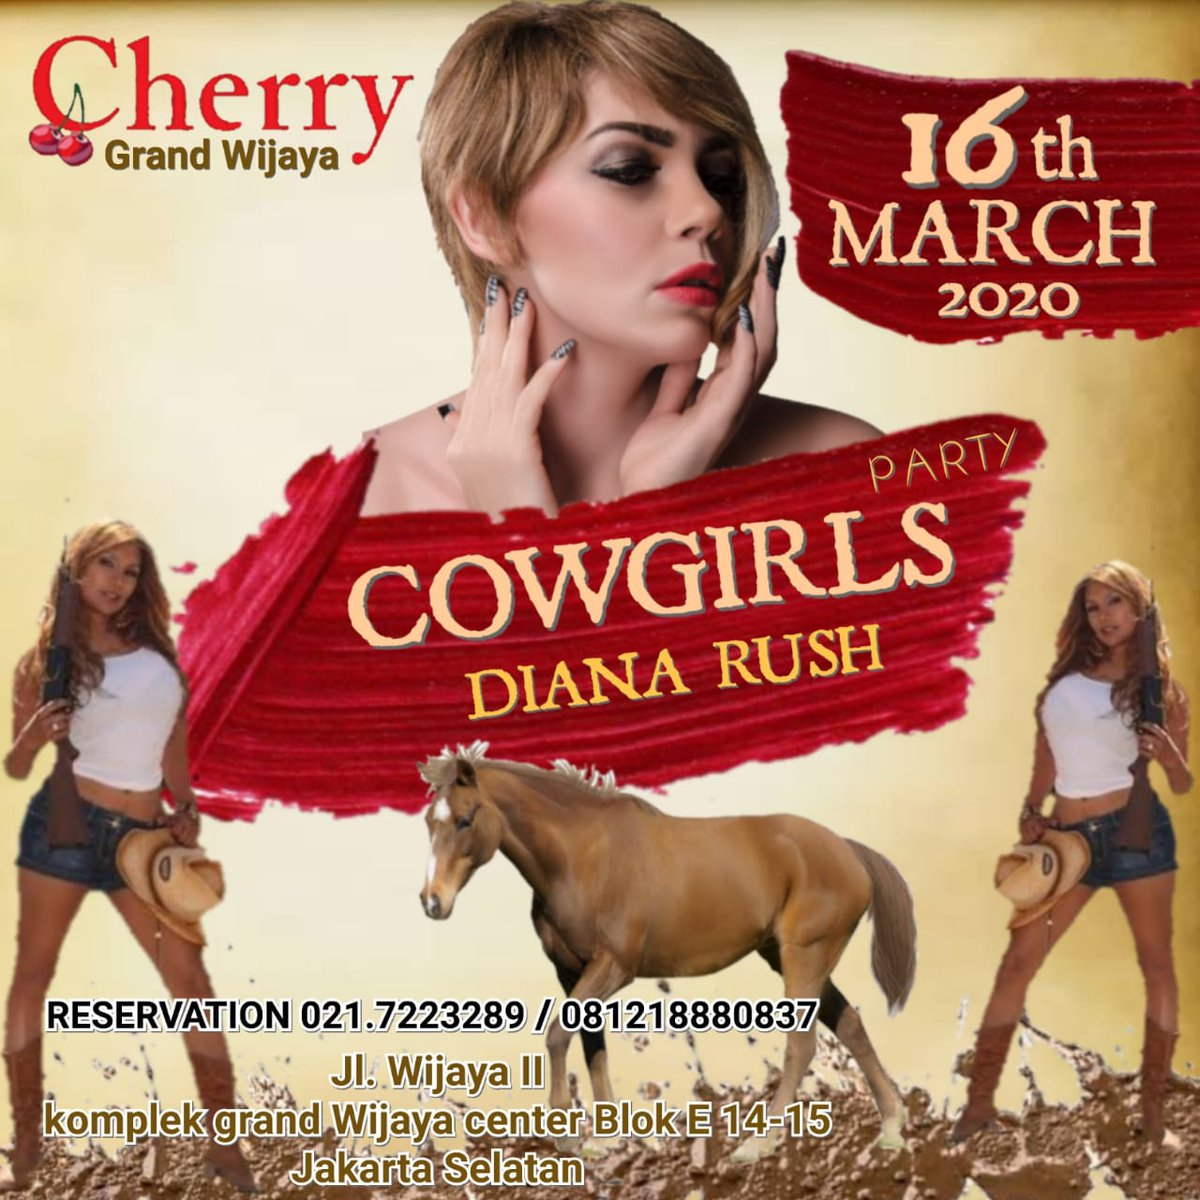 TONIGHT PARTY 😍😍 🐎COWGIRLS PARTY🐎  RESERVATION CALL/WA : 081211678533   Alamat: Jl. Wijaya II komplek grand Wijaya center Blok E 14-15 Jakarta Selatan  #bigevent #bestevent #kopdar #kongkow #hangout #entertainment #party #partyevent #clubbersjakartaselatan #nongkrongmurah